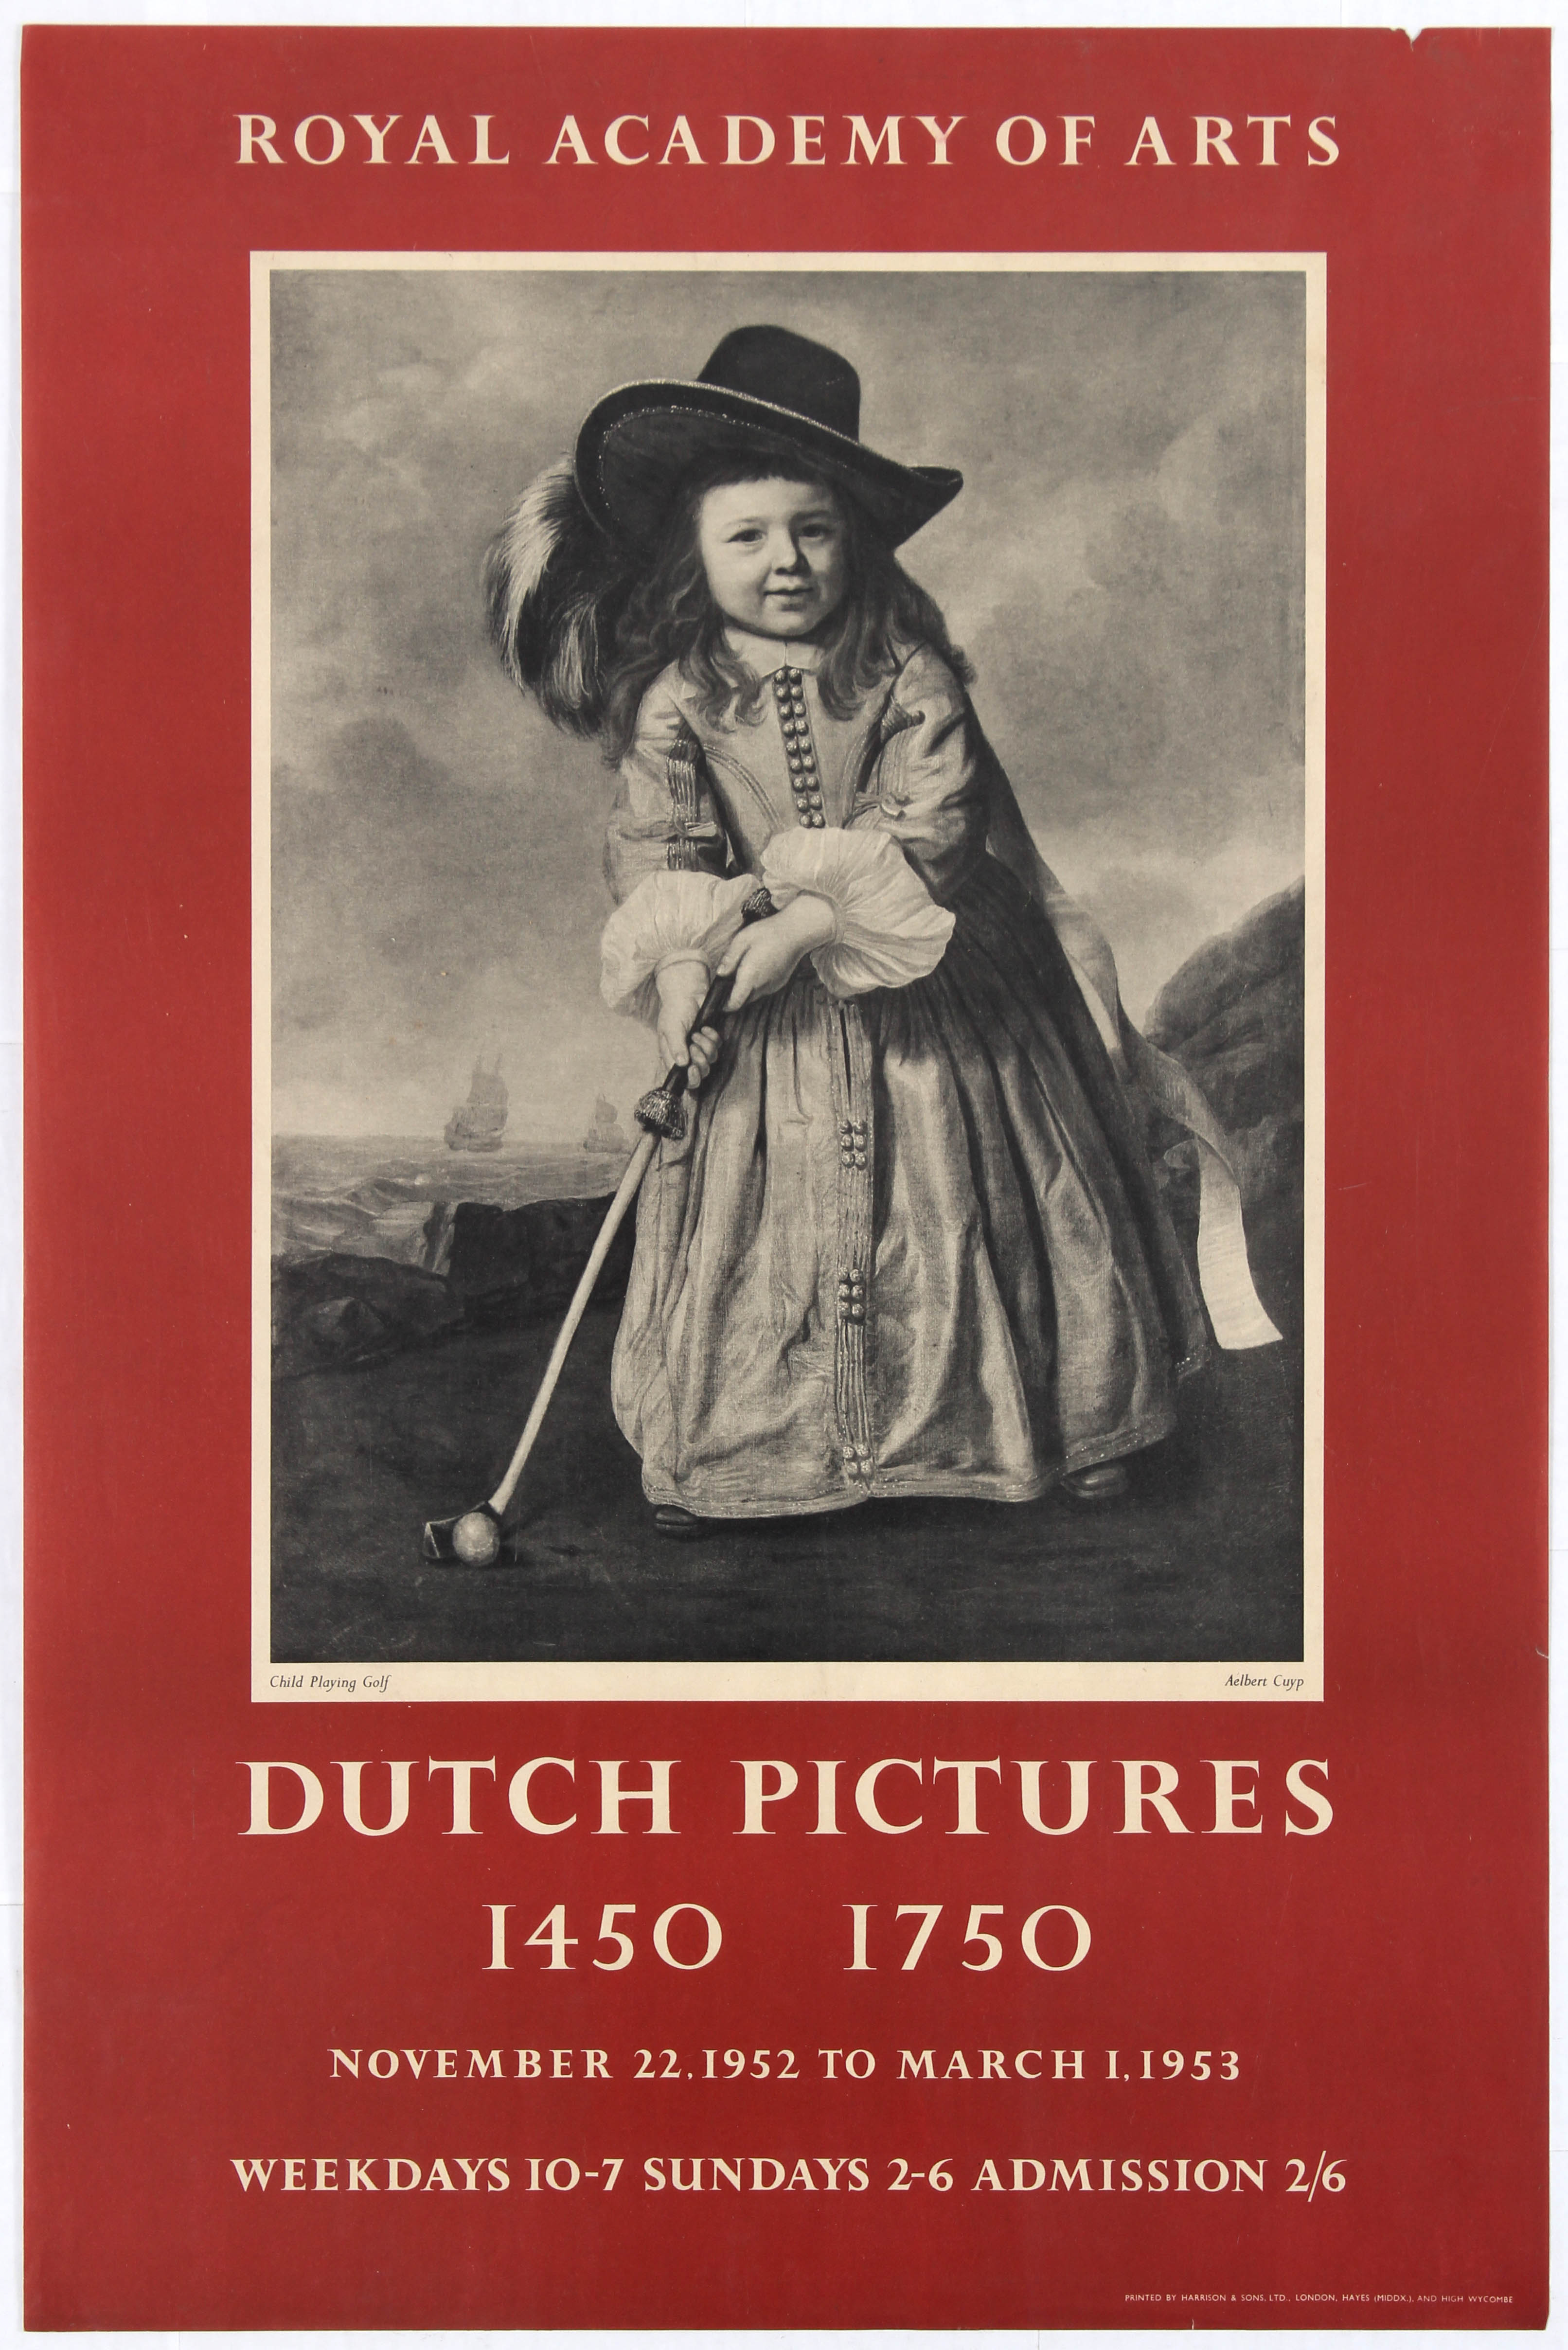 Lot 1507 - Advertising Poster Royal Academy of Arts Dutch Pictures 1450 1750